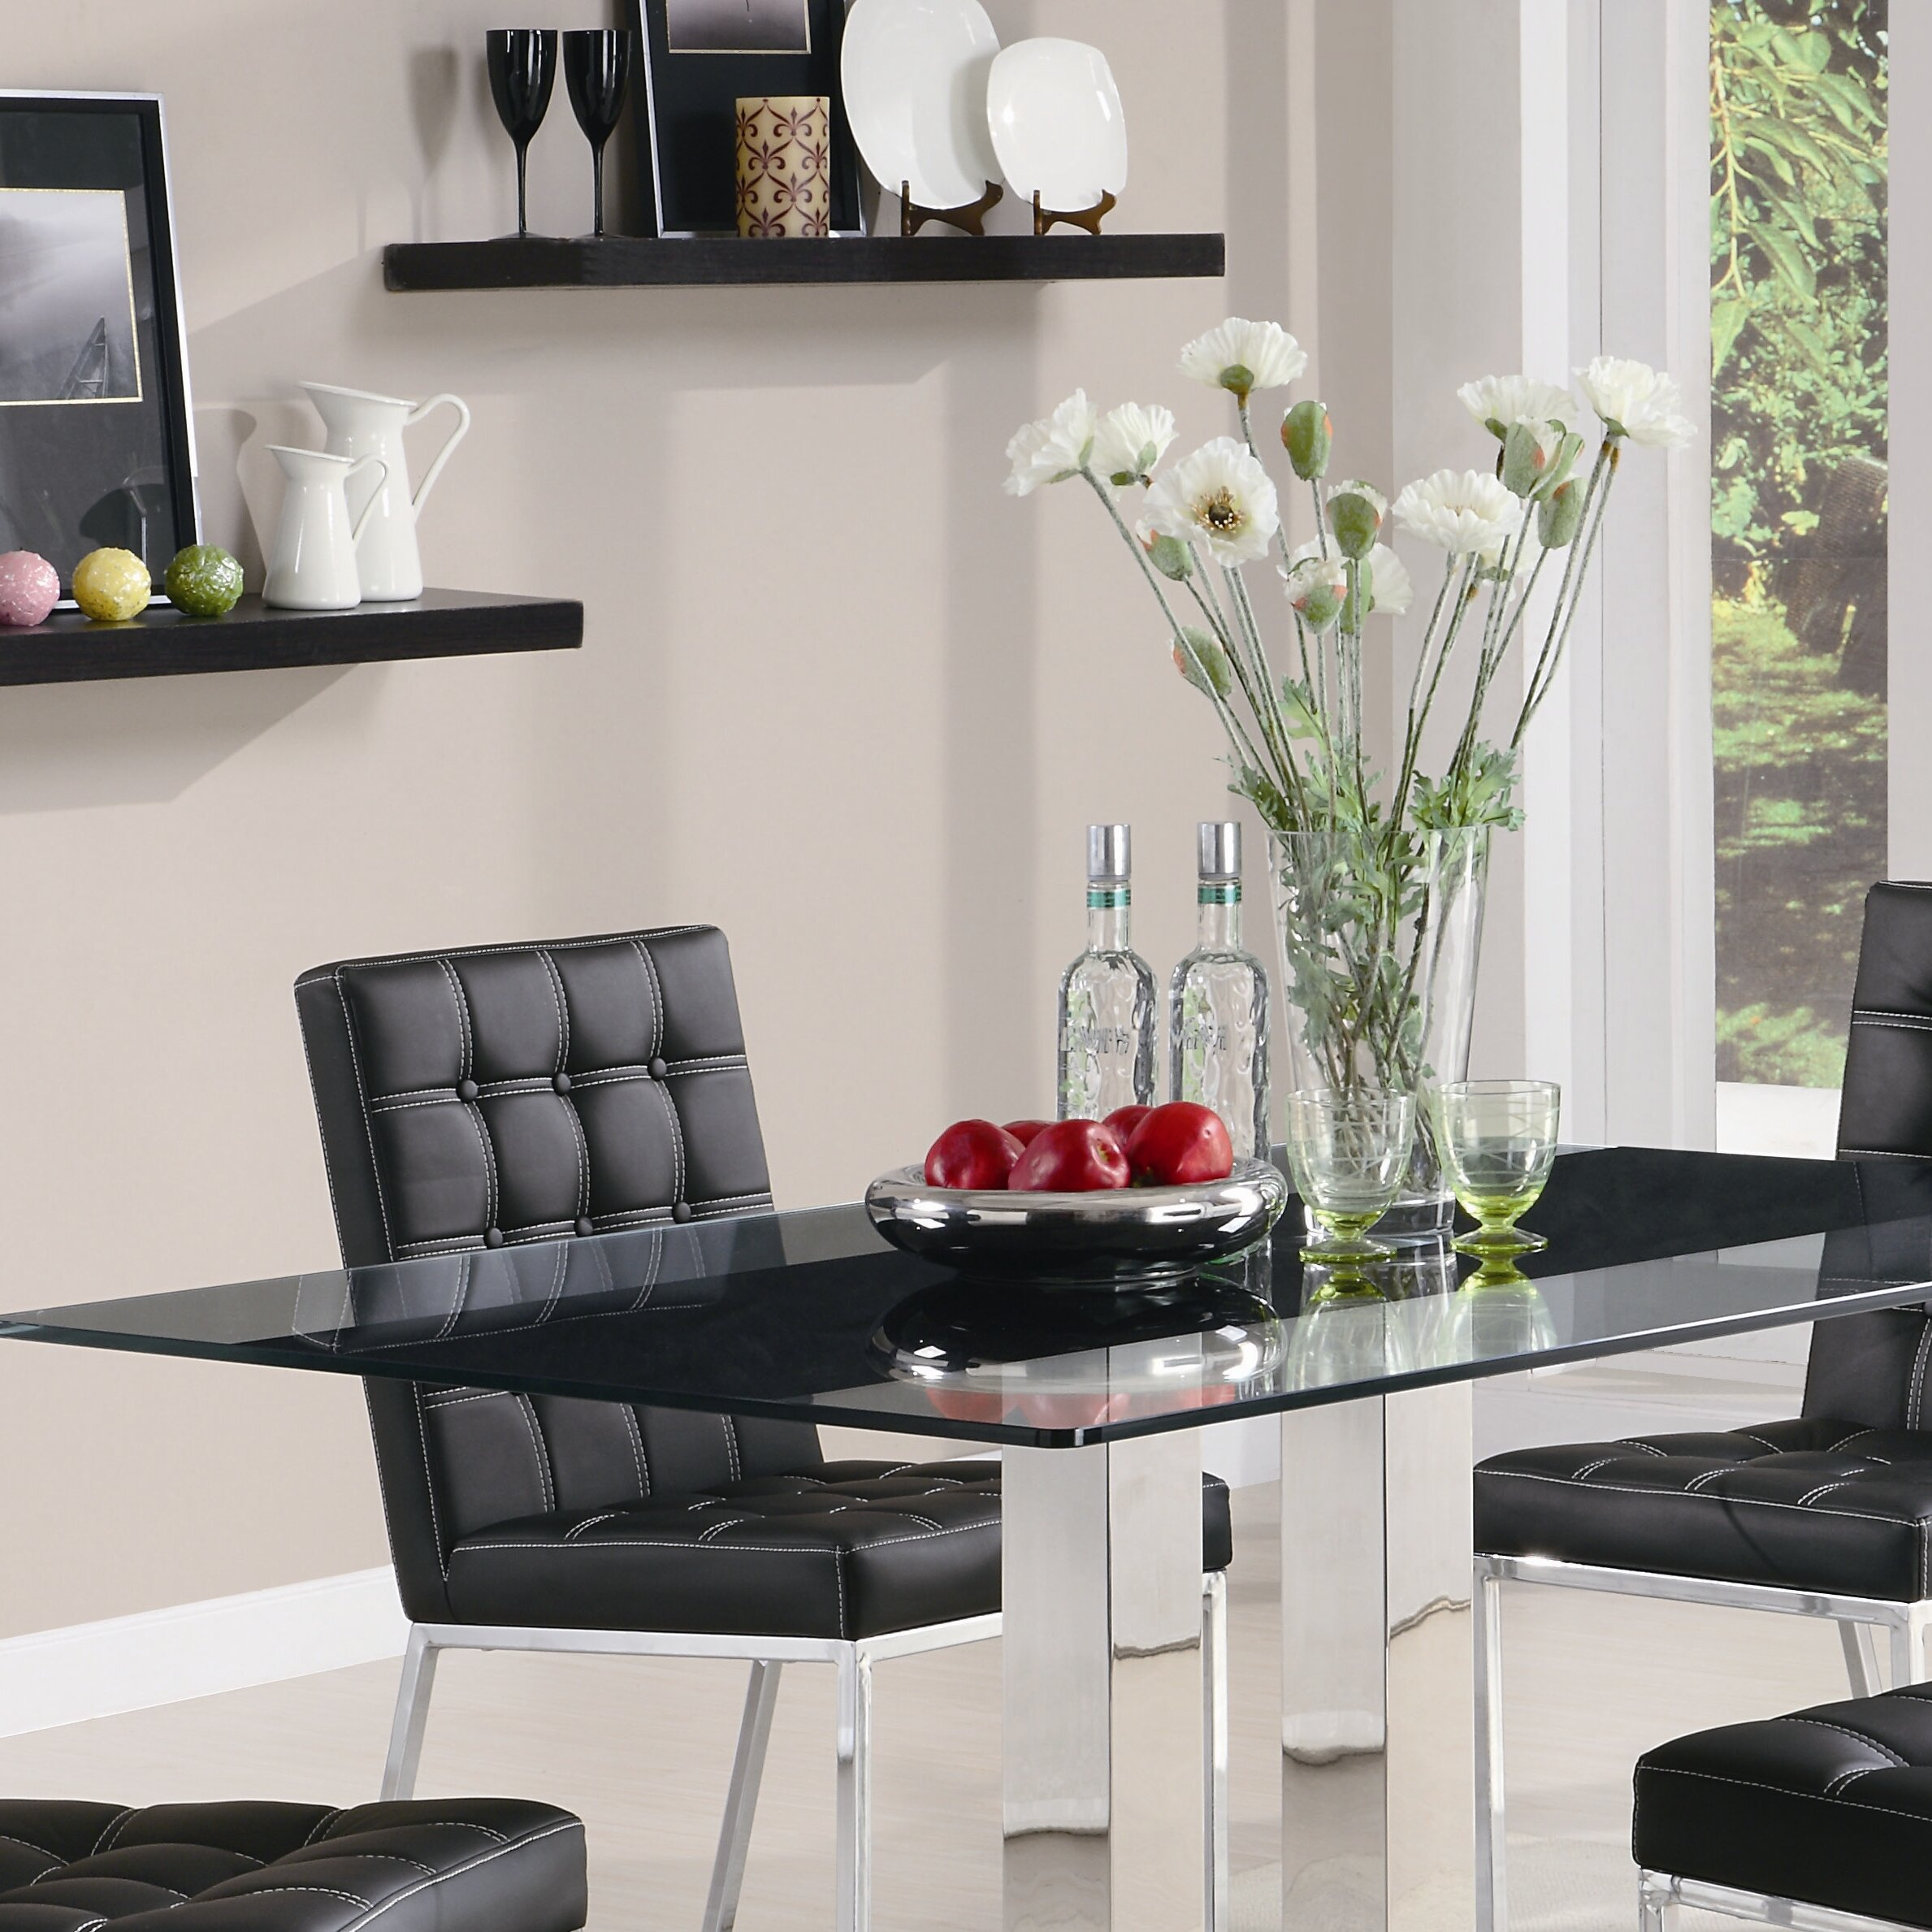 Wildon home plymouth dining table reviews for Wildon home dining